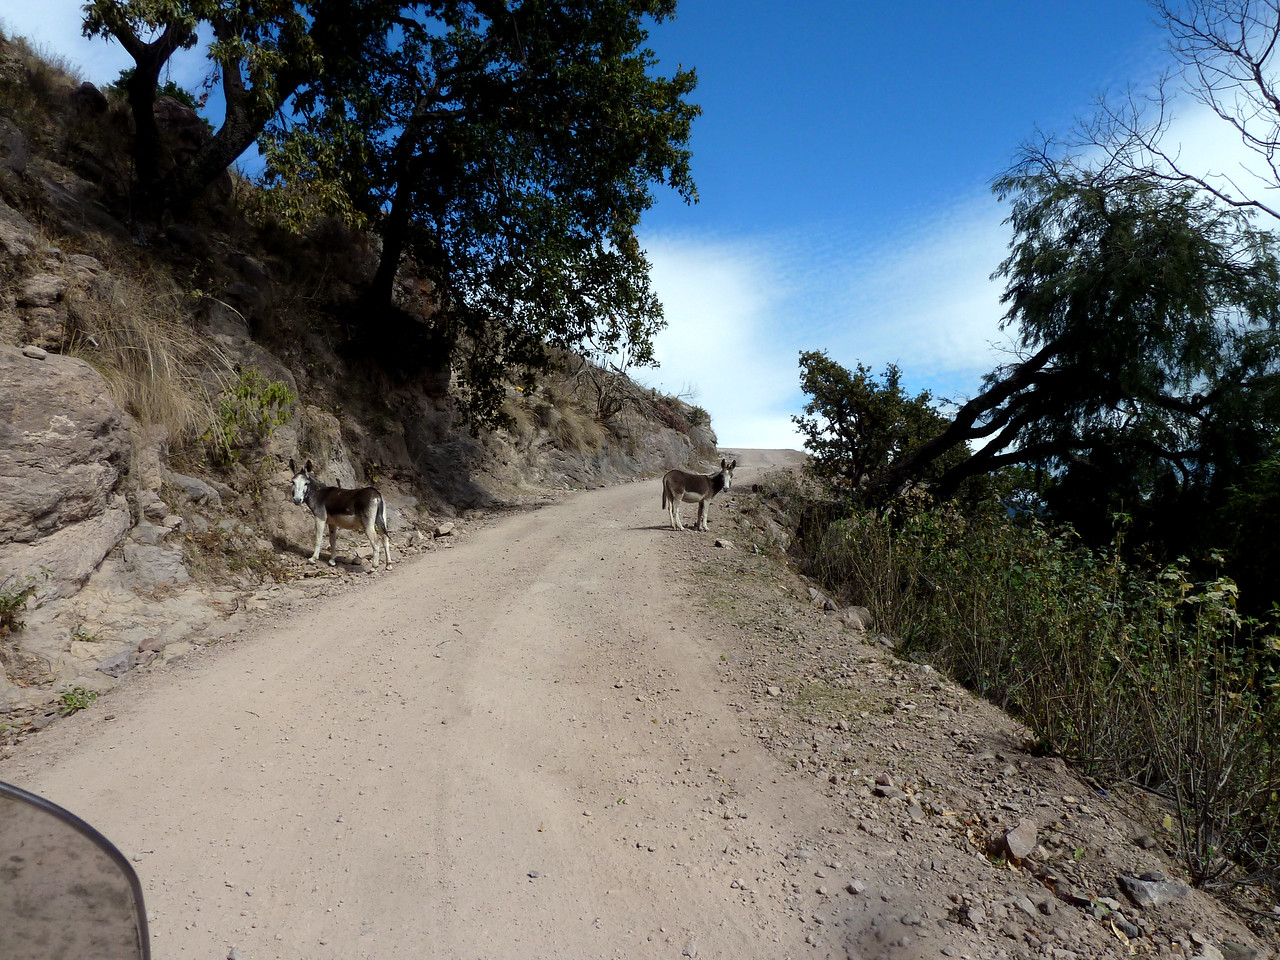 Burros along the switchbacks.